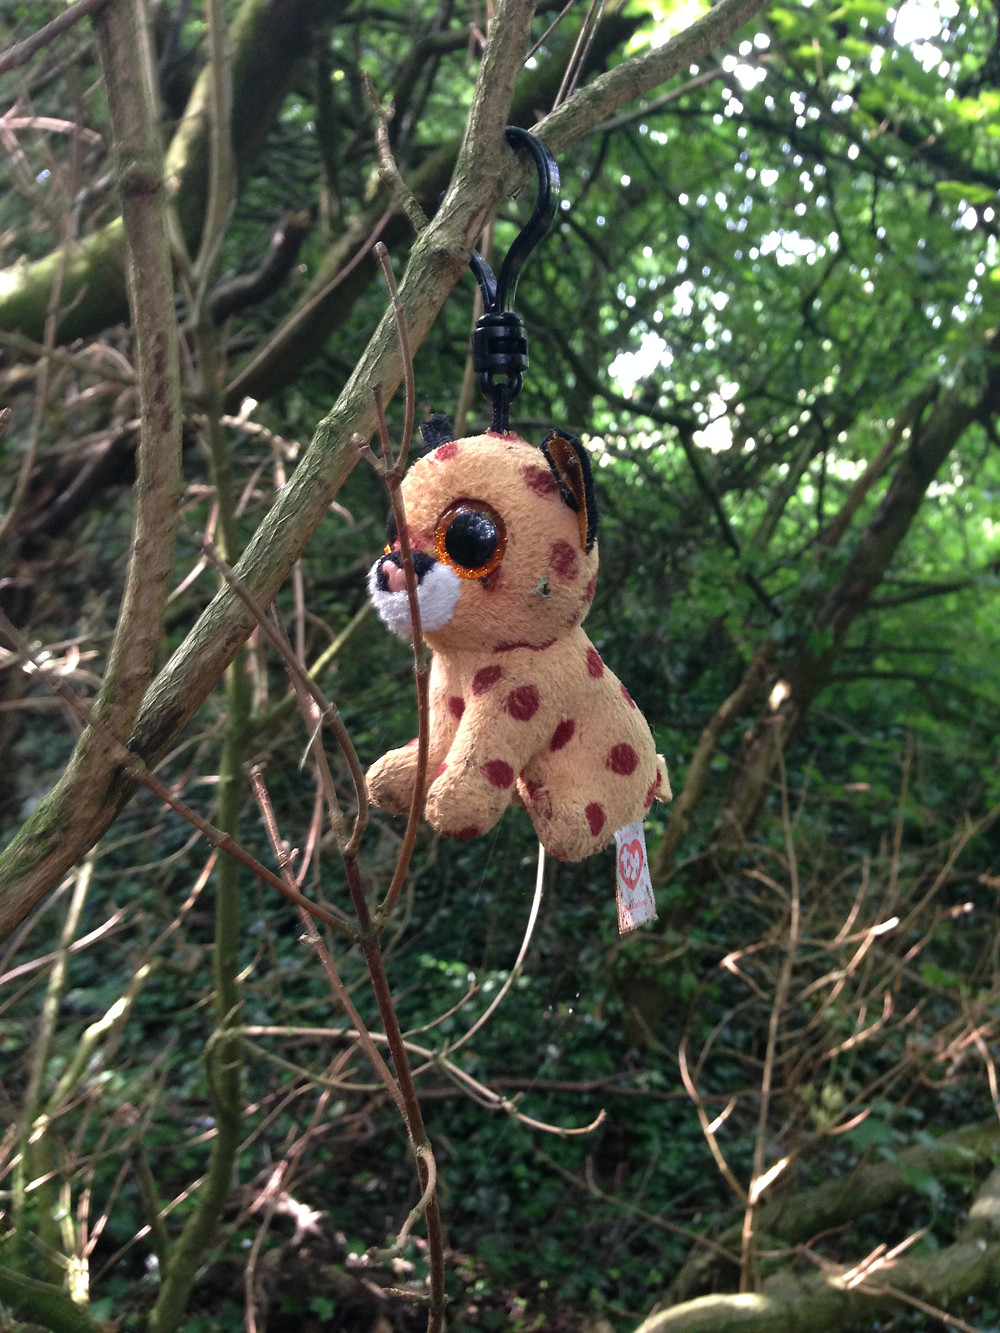 Photo of a small toy in a tree